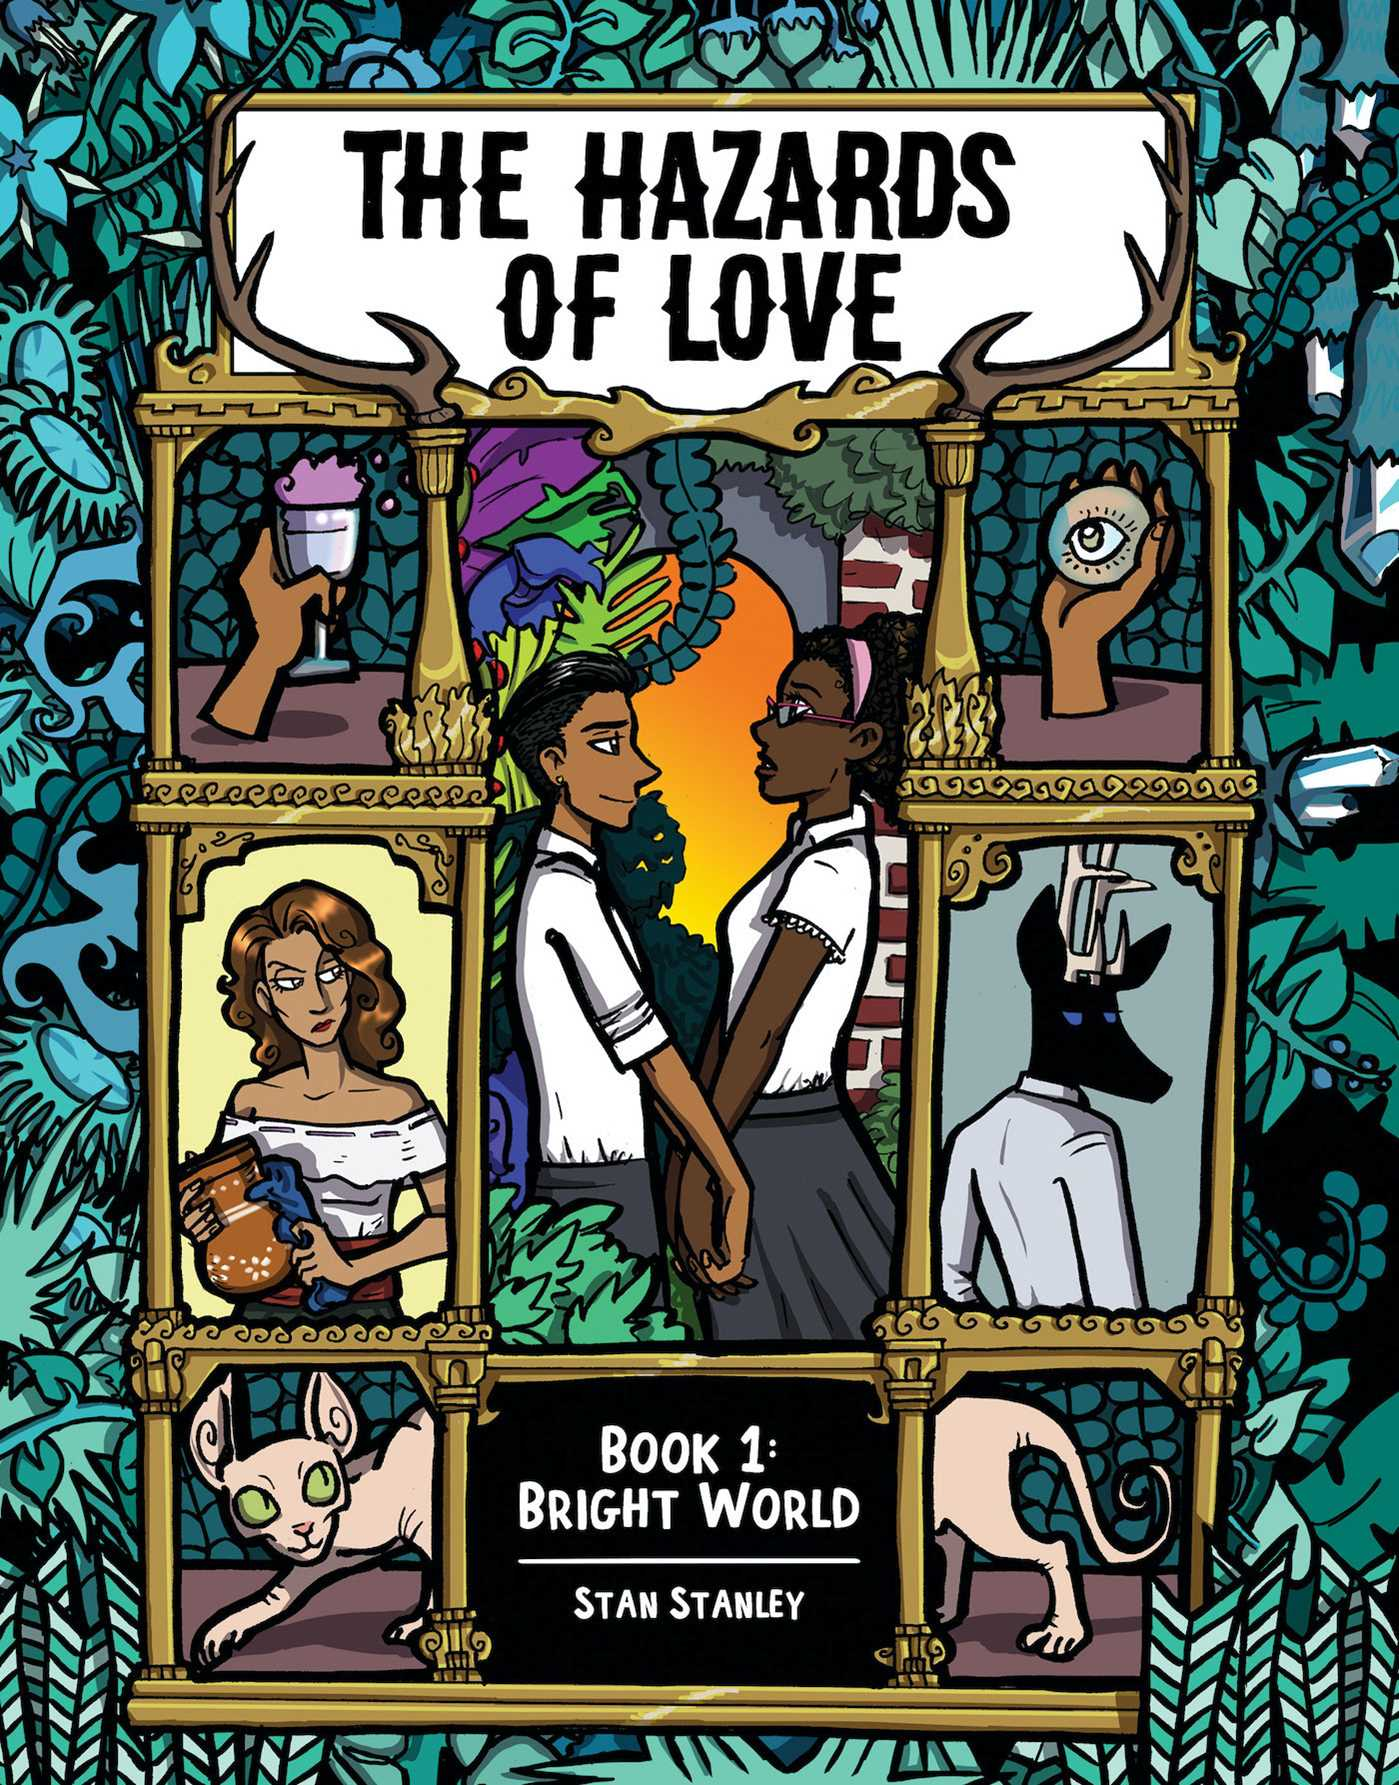 The Hazards of Love Vol 1 book cover